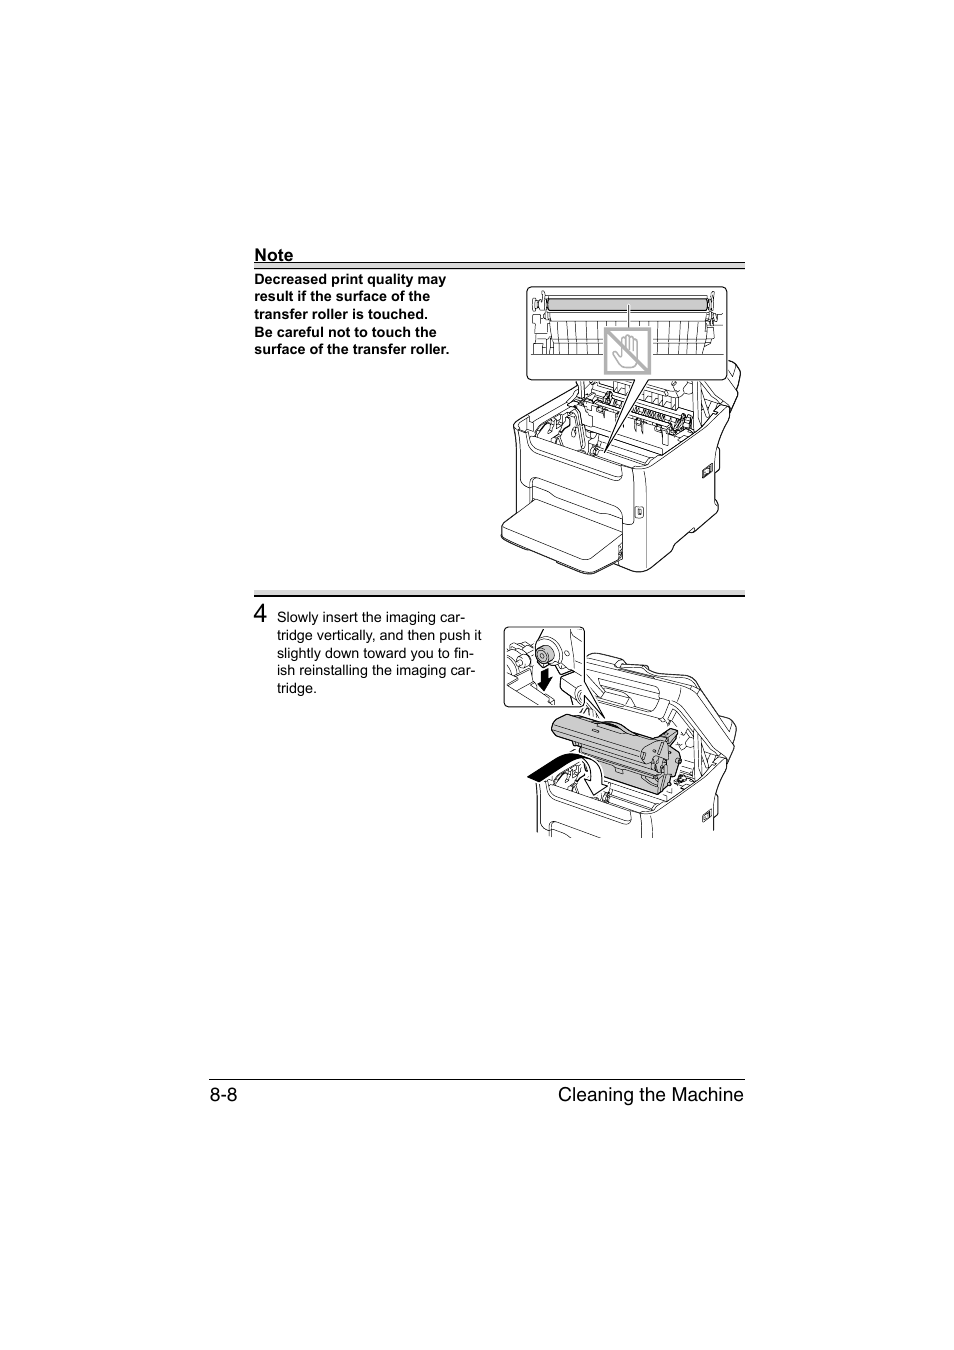 konica minolta magicolor 1690mf user manual page 195 285 rh manualsdir com konica minolta magicolor 1690mf user manual Operators Manual